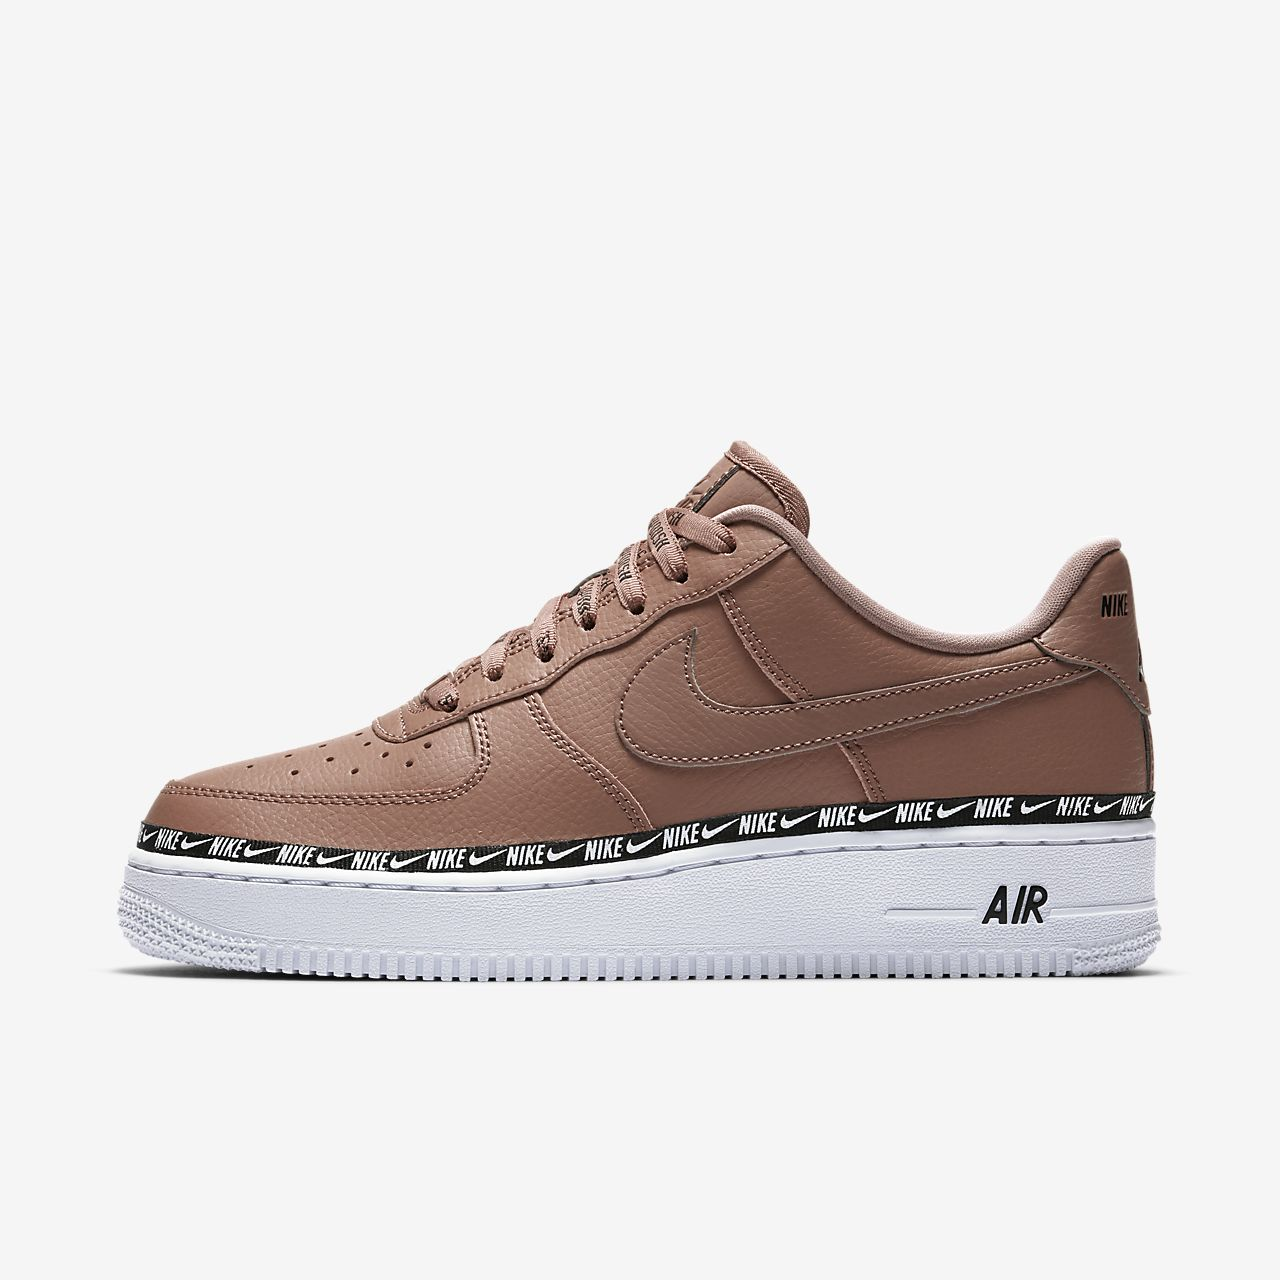 sports shoes d9390 4786f Chaussure Nike Air Force 1 07 SE Premium Logo pour Femme